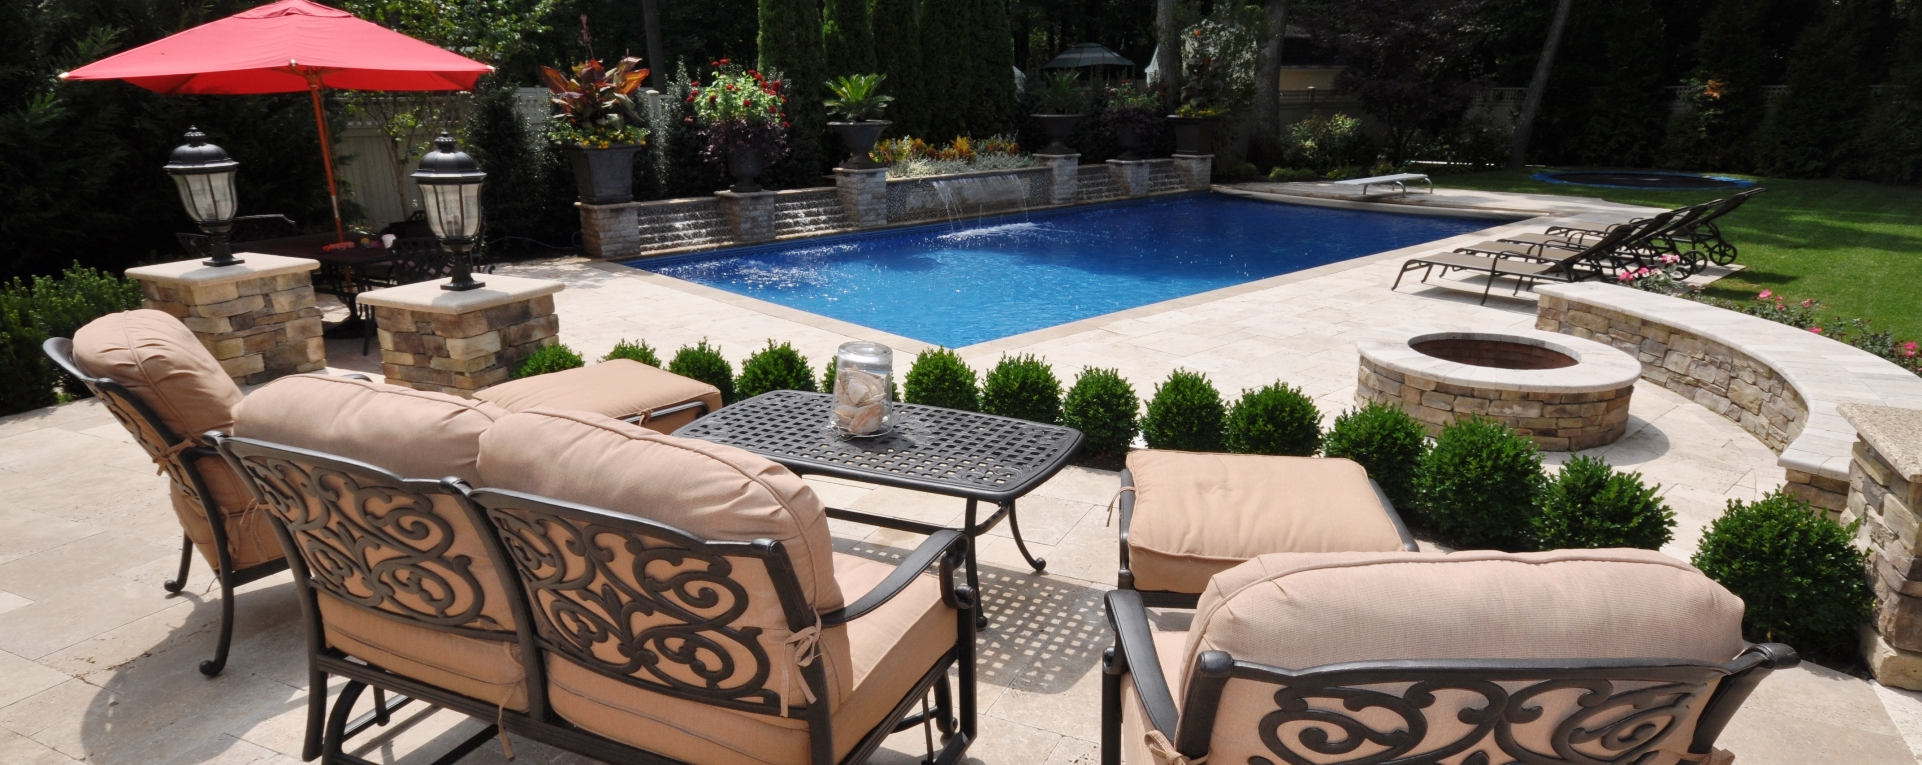 Patio Canopy On Outdoor Furniture And Lovely Long Island